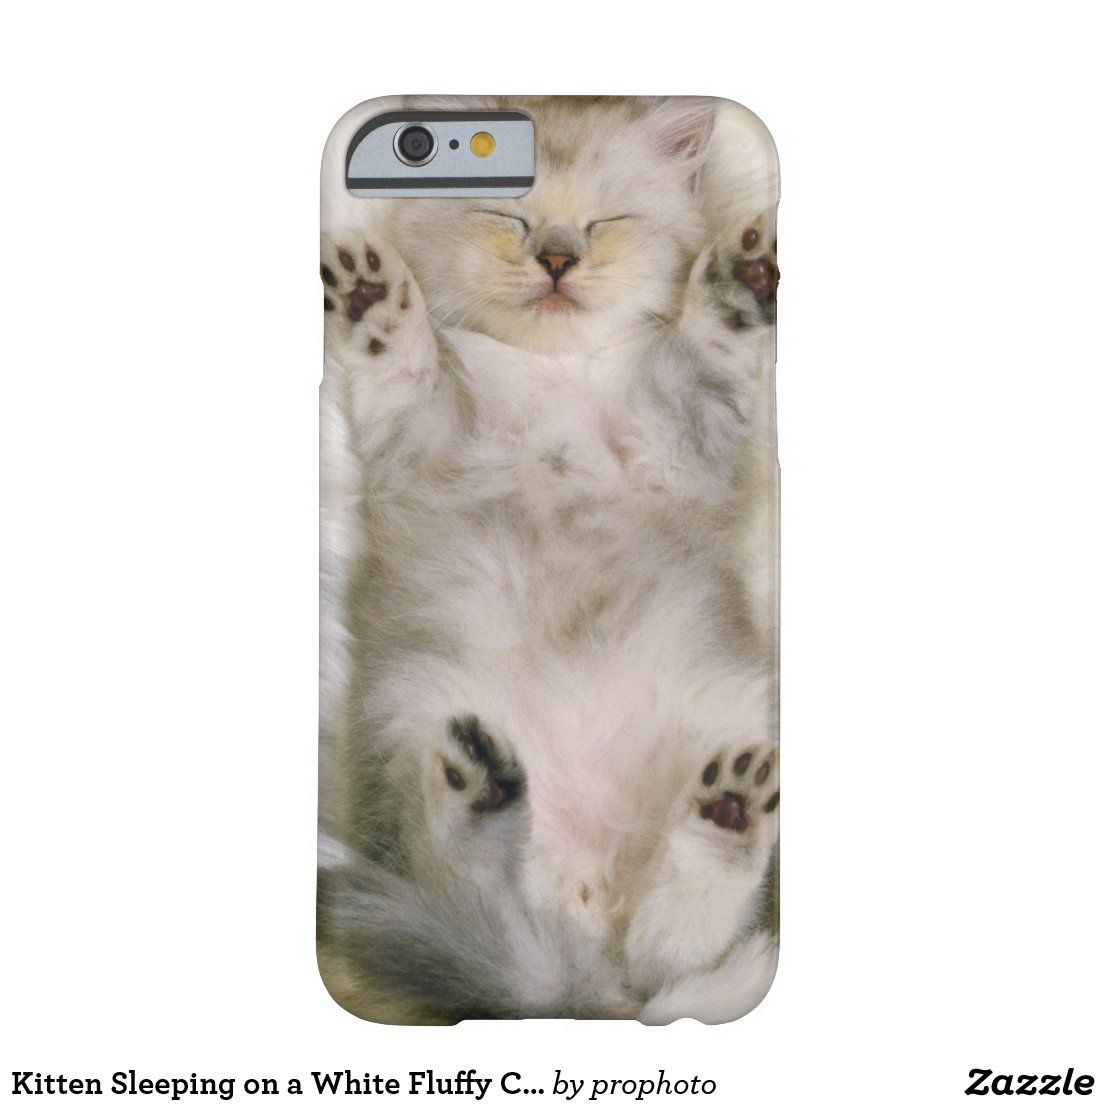 Kitten Sleeping On A White Fluffy Carpet High Case Mate Iphone Case Zazzle Com In 2020 Sleeping Kitten Fluffy Phone Cases Kitten